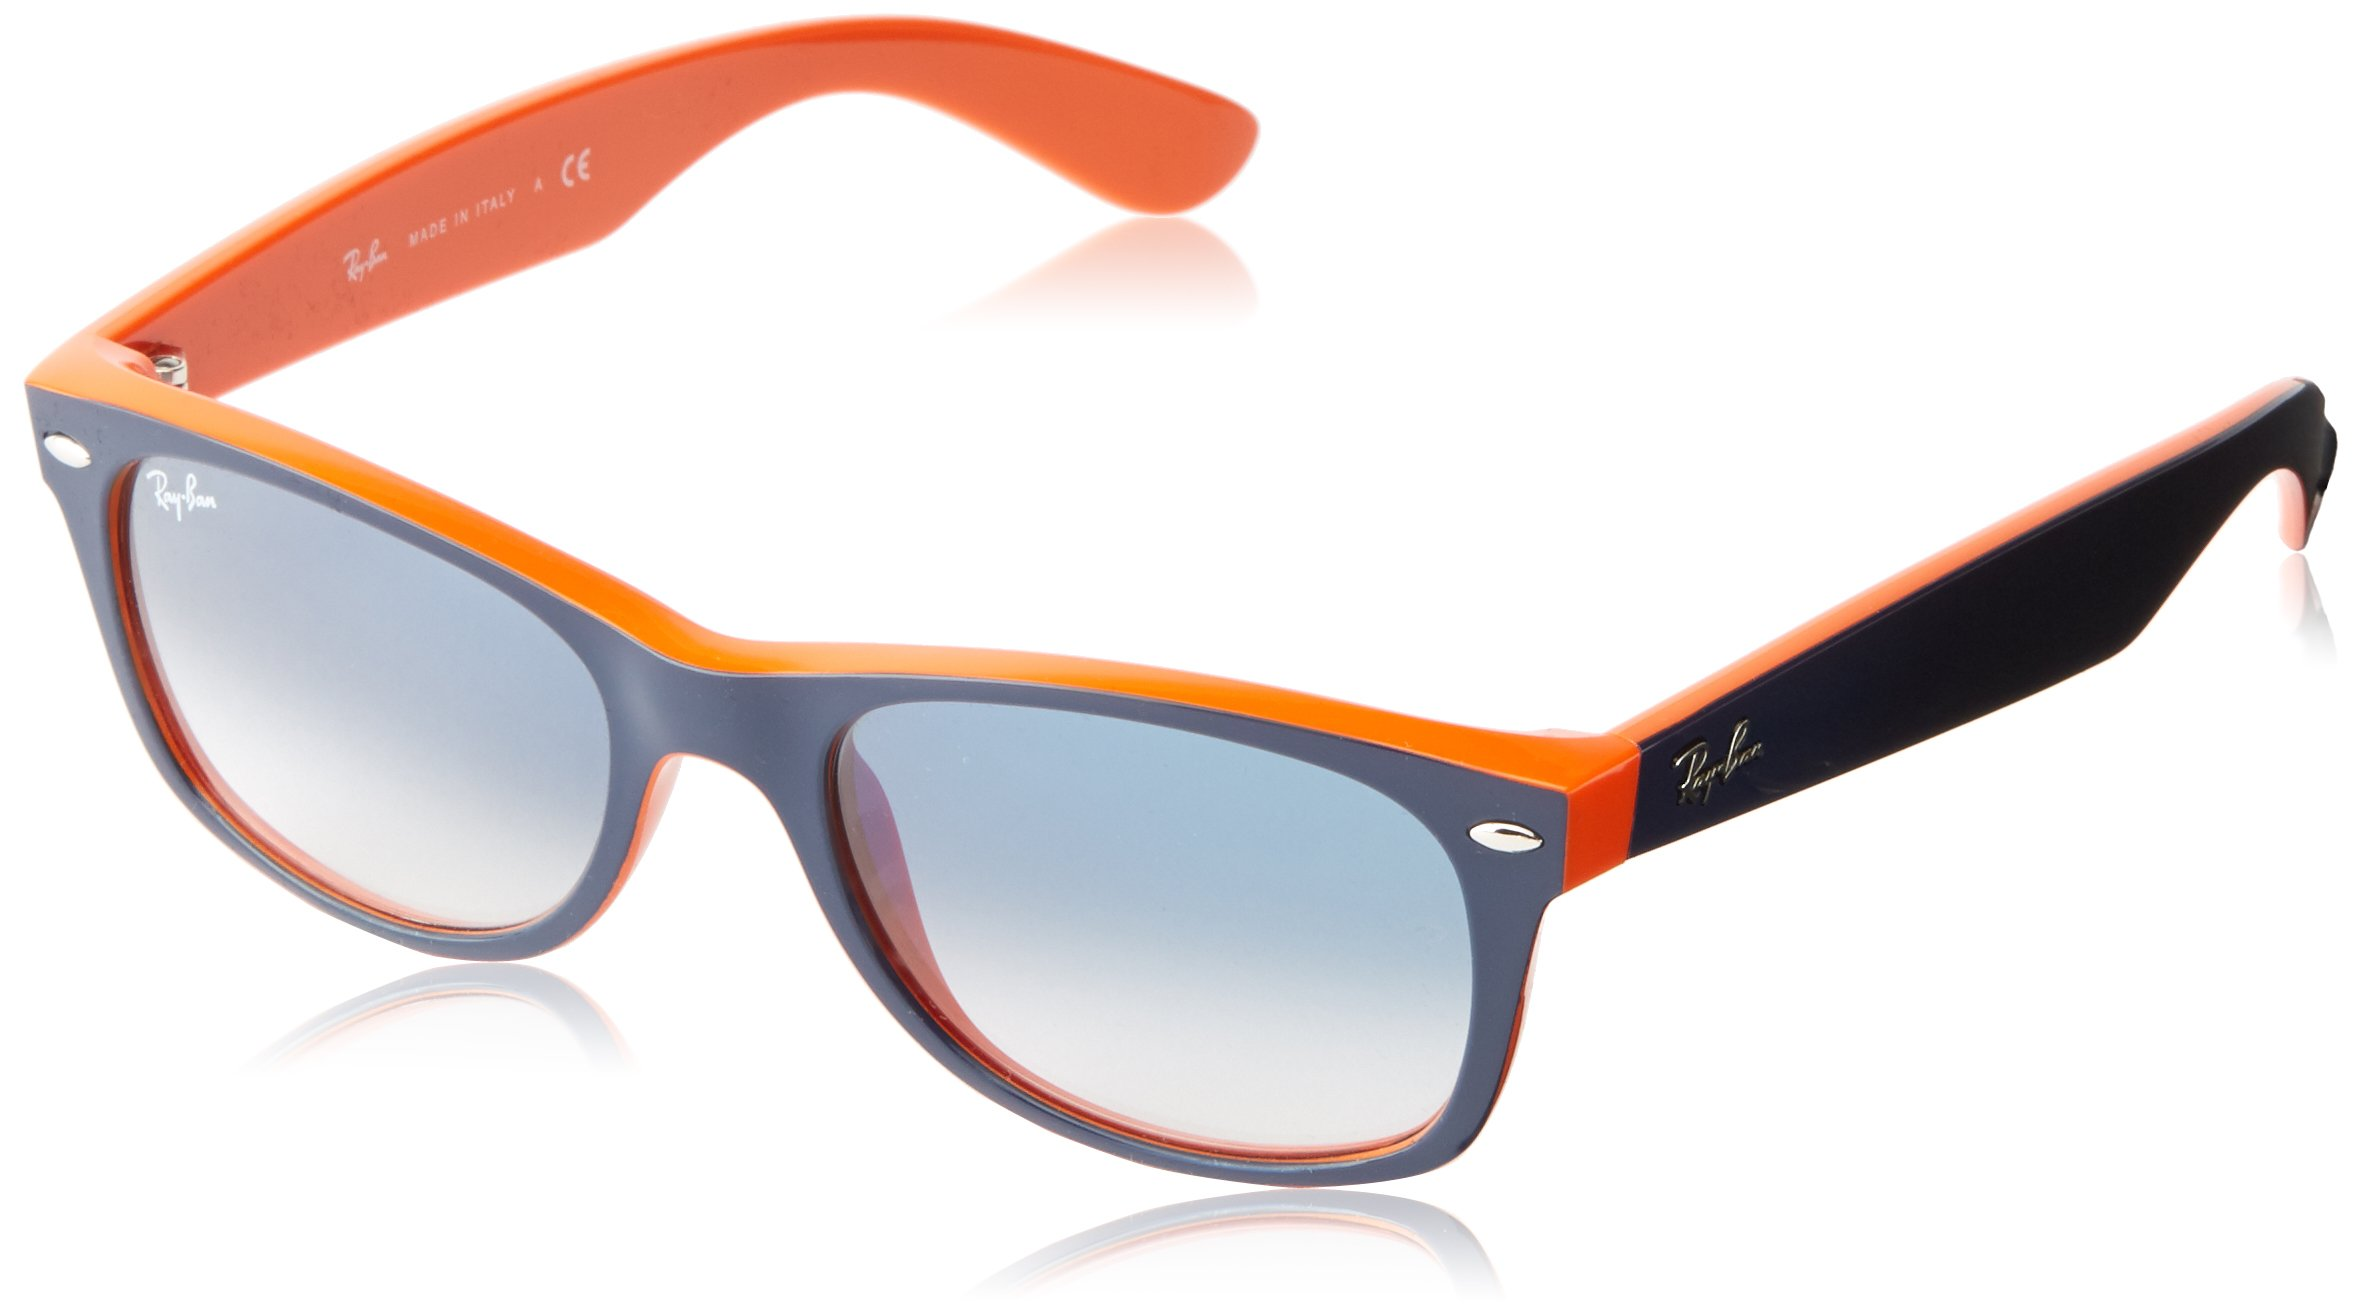 Ray-Ban RB2132 New Wayfarer Non Polarized Sunglasses, Blue/Orange, Light Blue Gradient, 52 mm